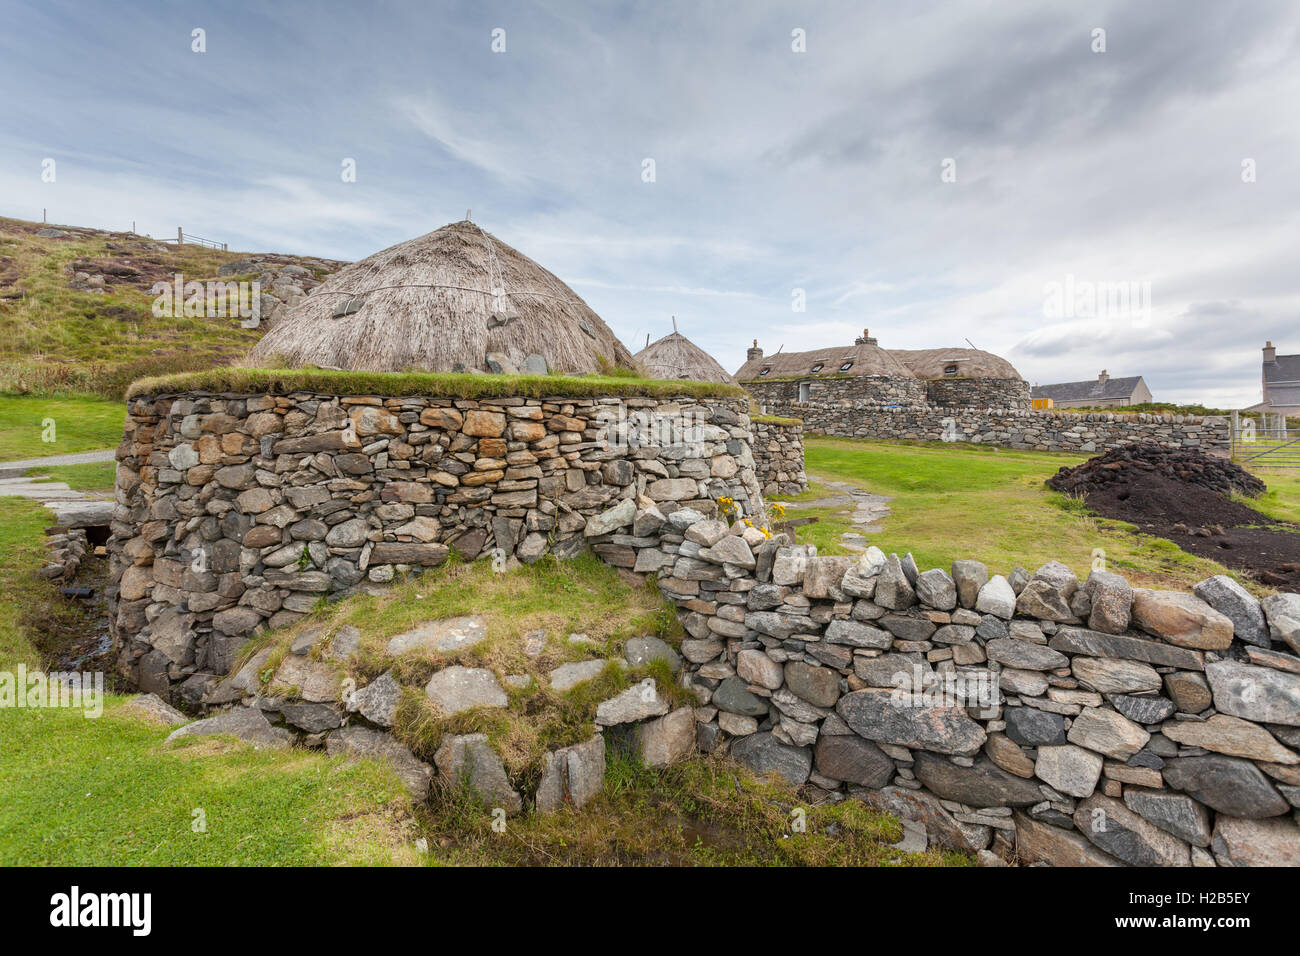 Isle of Lewis, Outer Hebrides, Scotland Garenin Black House Village Stock Photo